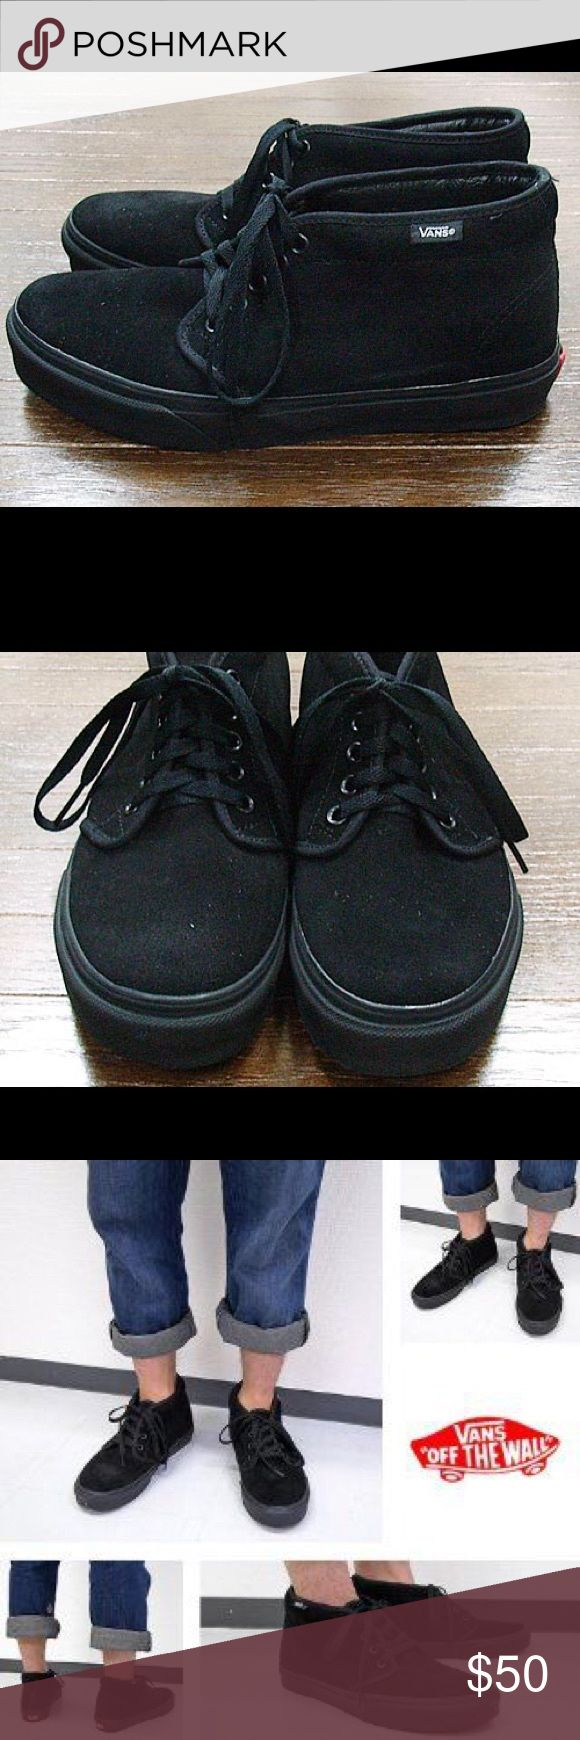 Vans Suede All Black Chukka Boot All black vans chukka boot style women's size 8 men's size 6.5. Perfectly condition never worn. Vans Shoes Sneakers